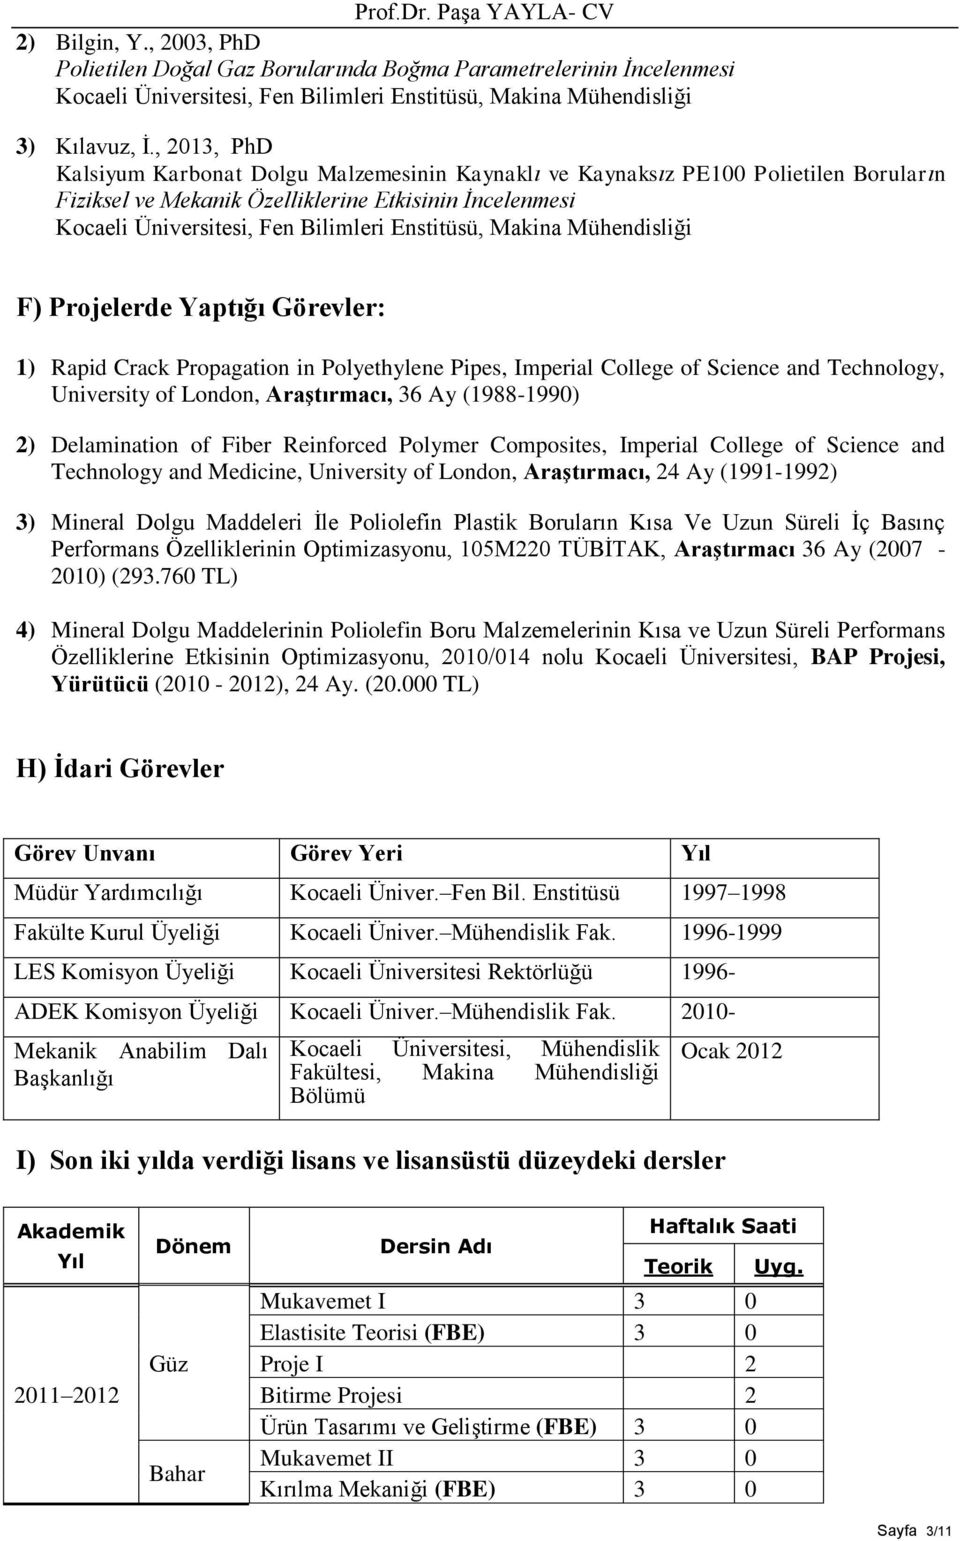 Crack Propagation in Polyethylene Pipes, Imperial College of Science and Technology, University of London, Araştırmacı, 36 Ay (1988-1990) 2) Delamination of Fiber Reinforced Polymer Composites,